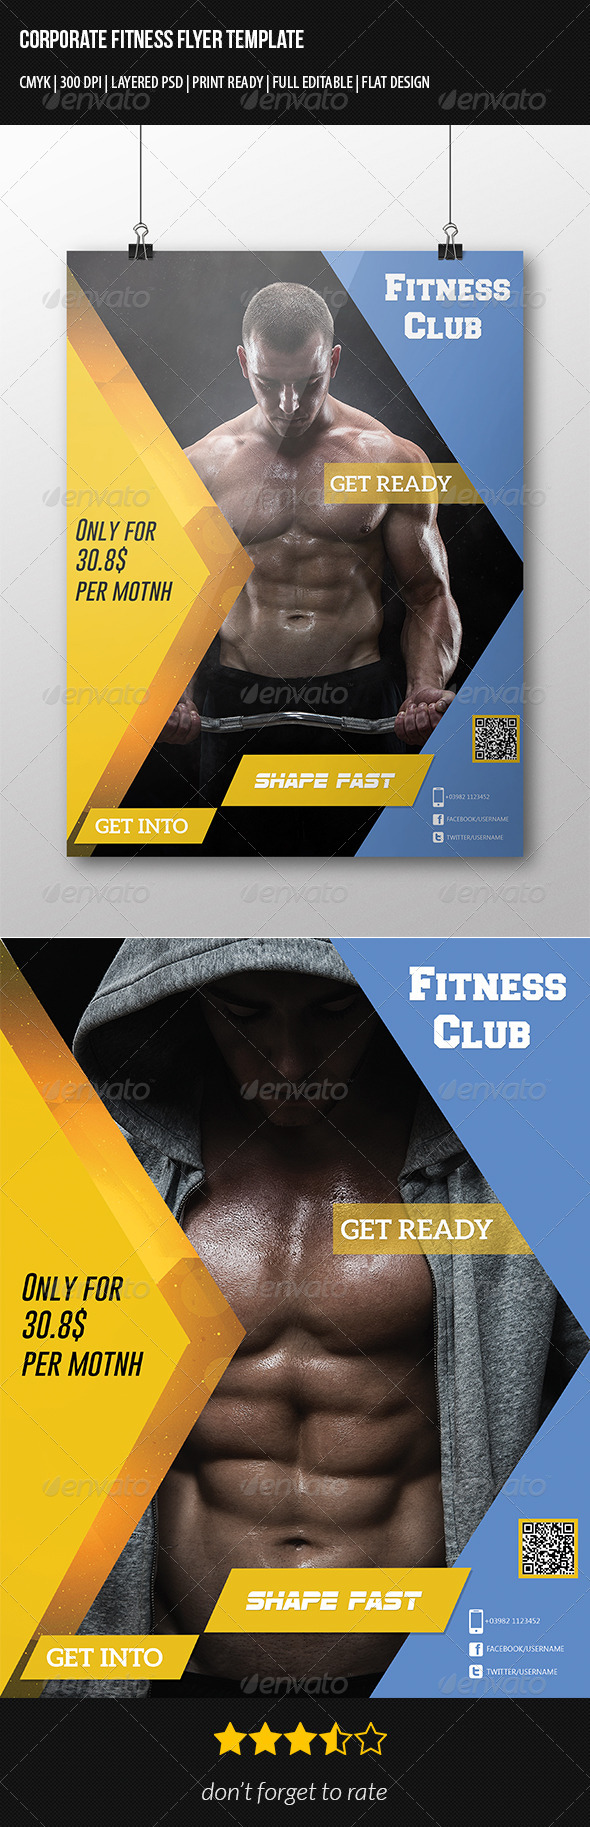 GraphicRiver Corporate Fitness Flyer Template 7301963